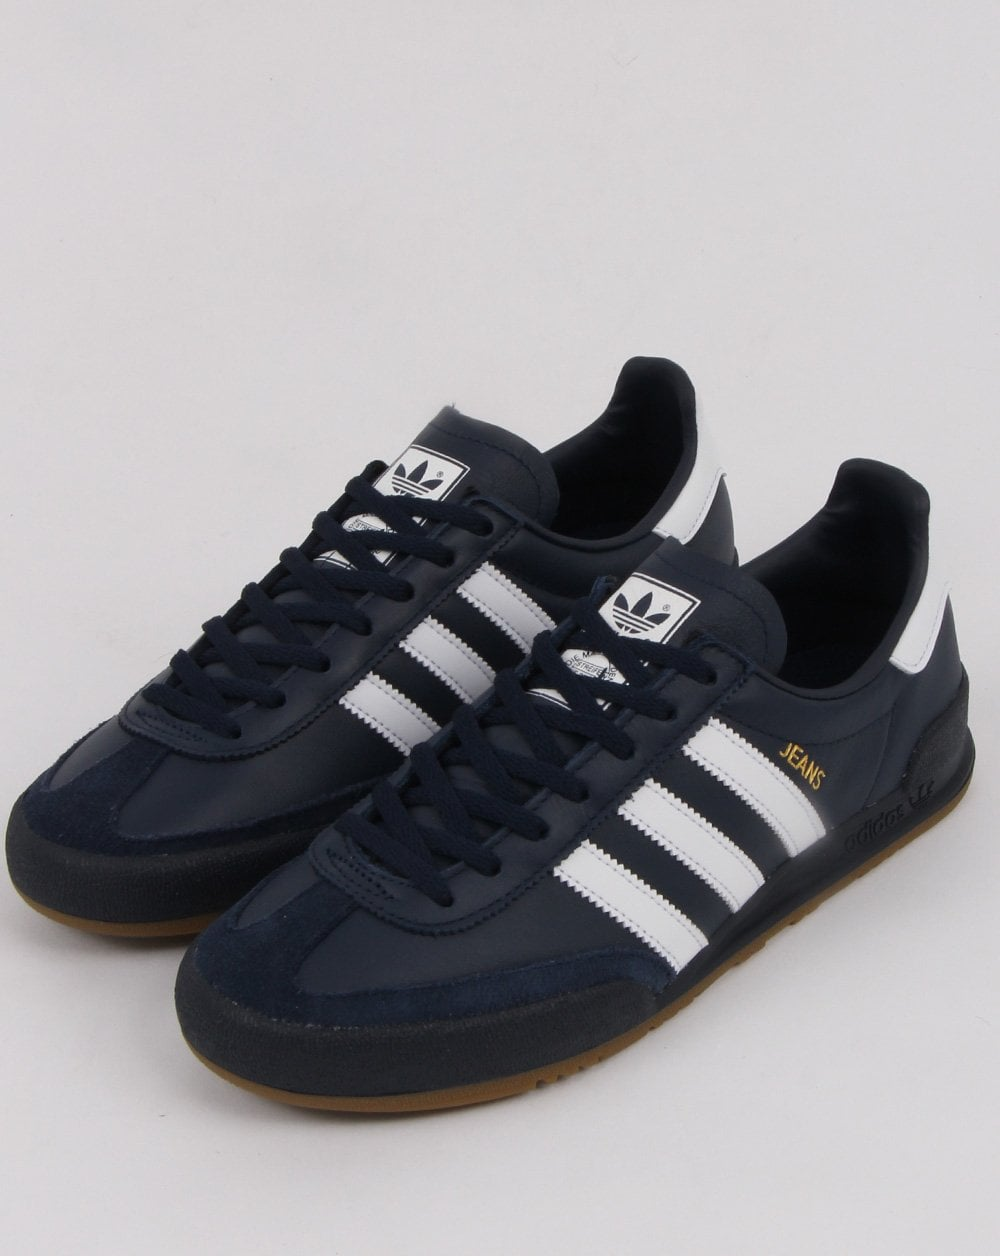 Adidas Jeans Leather Trainers Navy/white